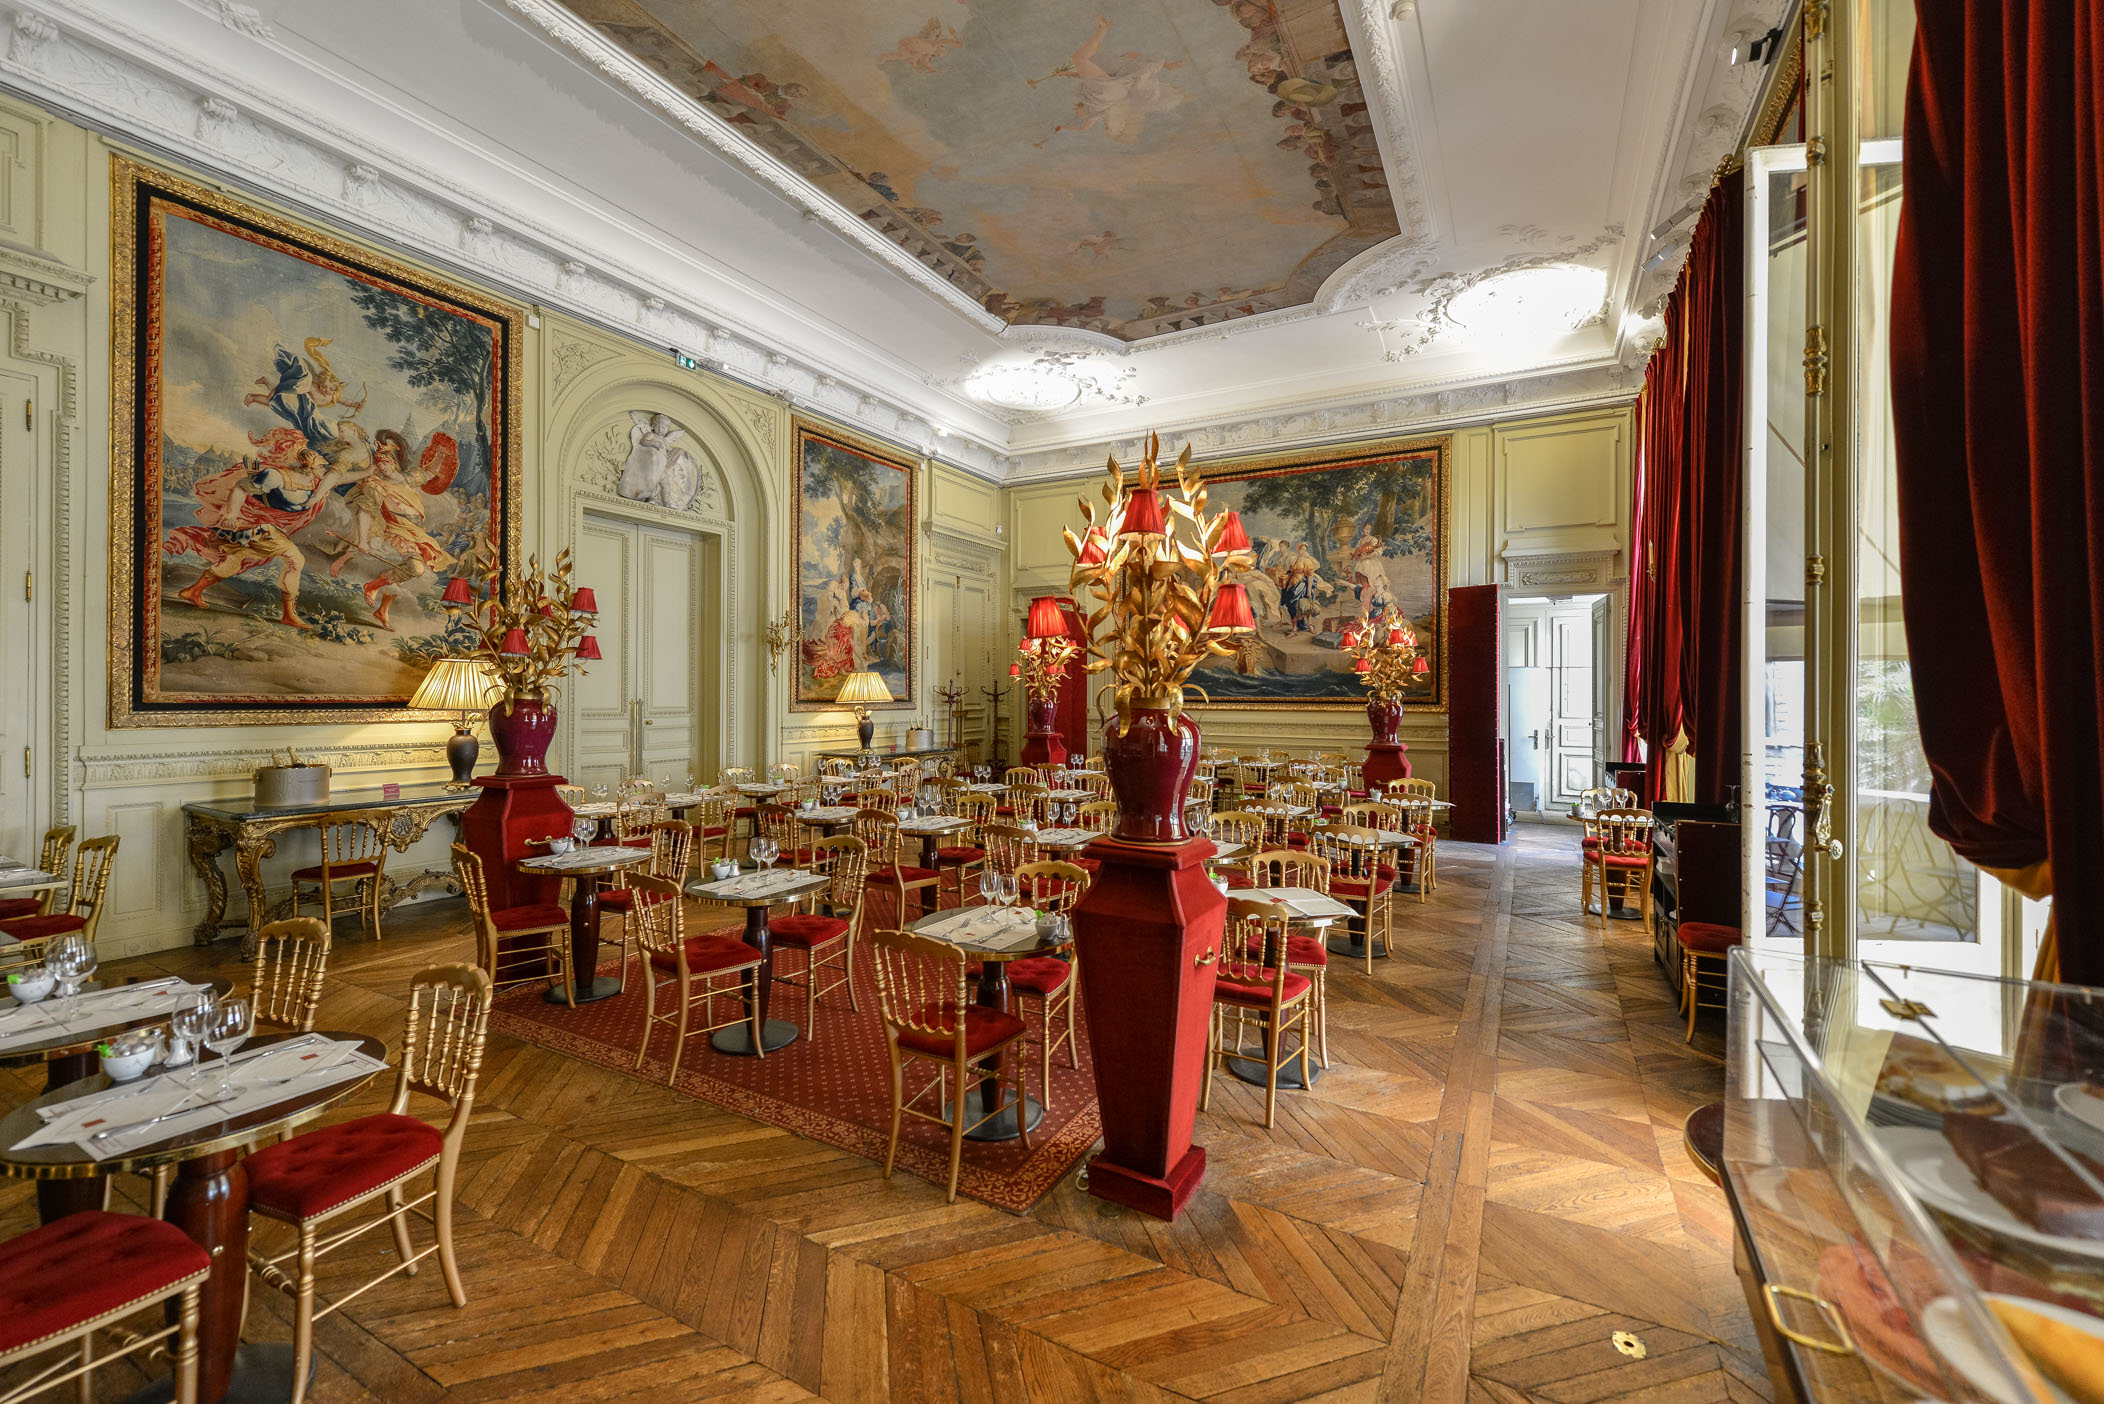 Jacquemart andr museum one of the most elegant museum in paris - La salle a manger paris ...